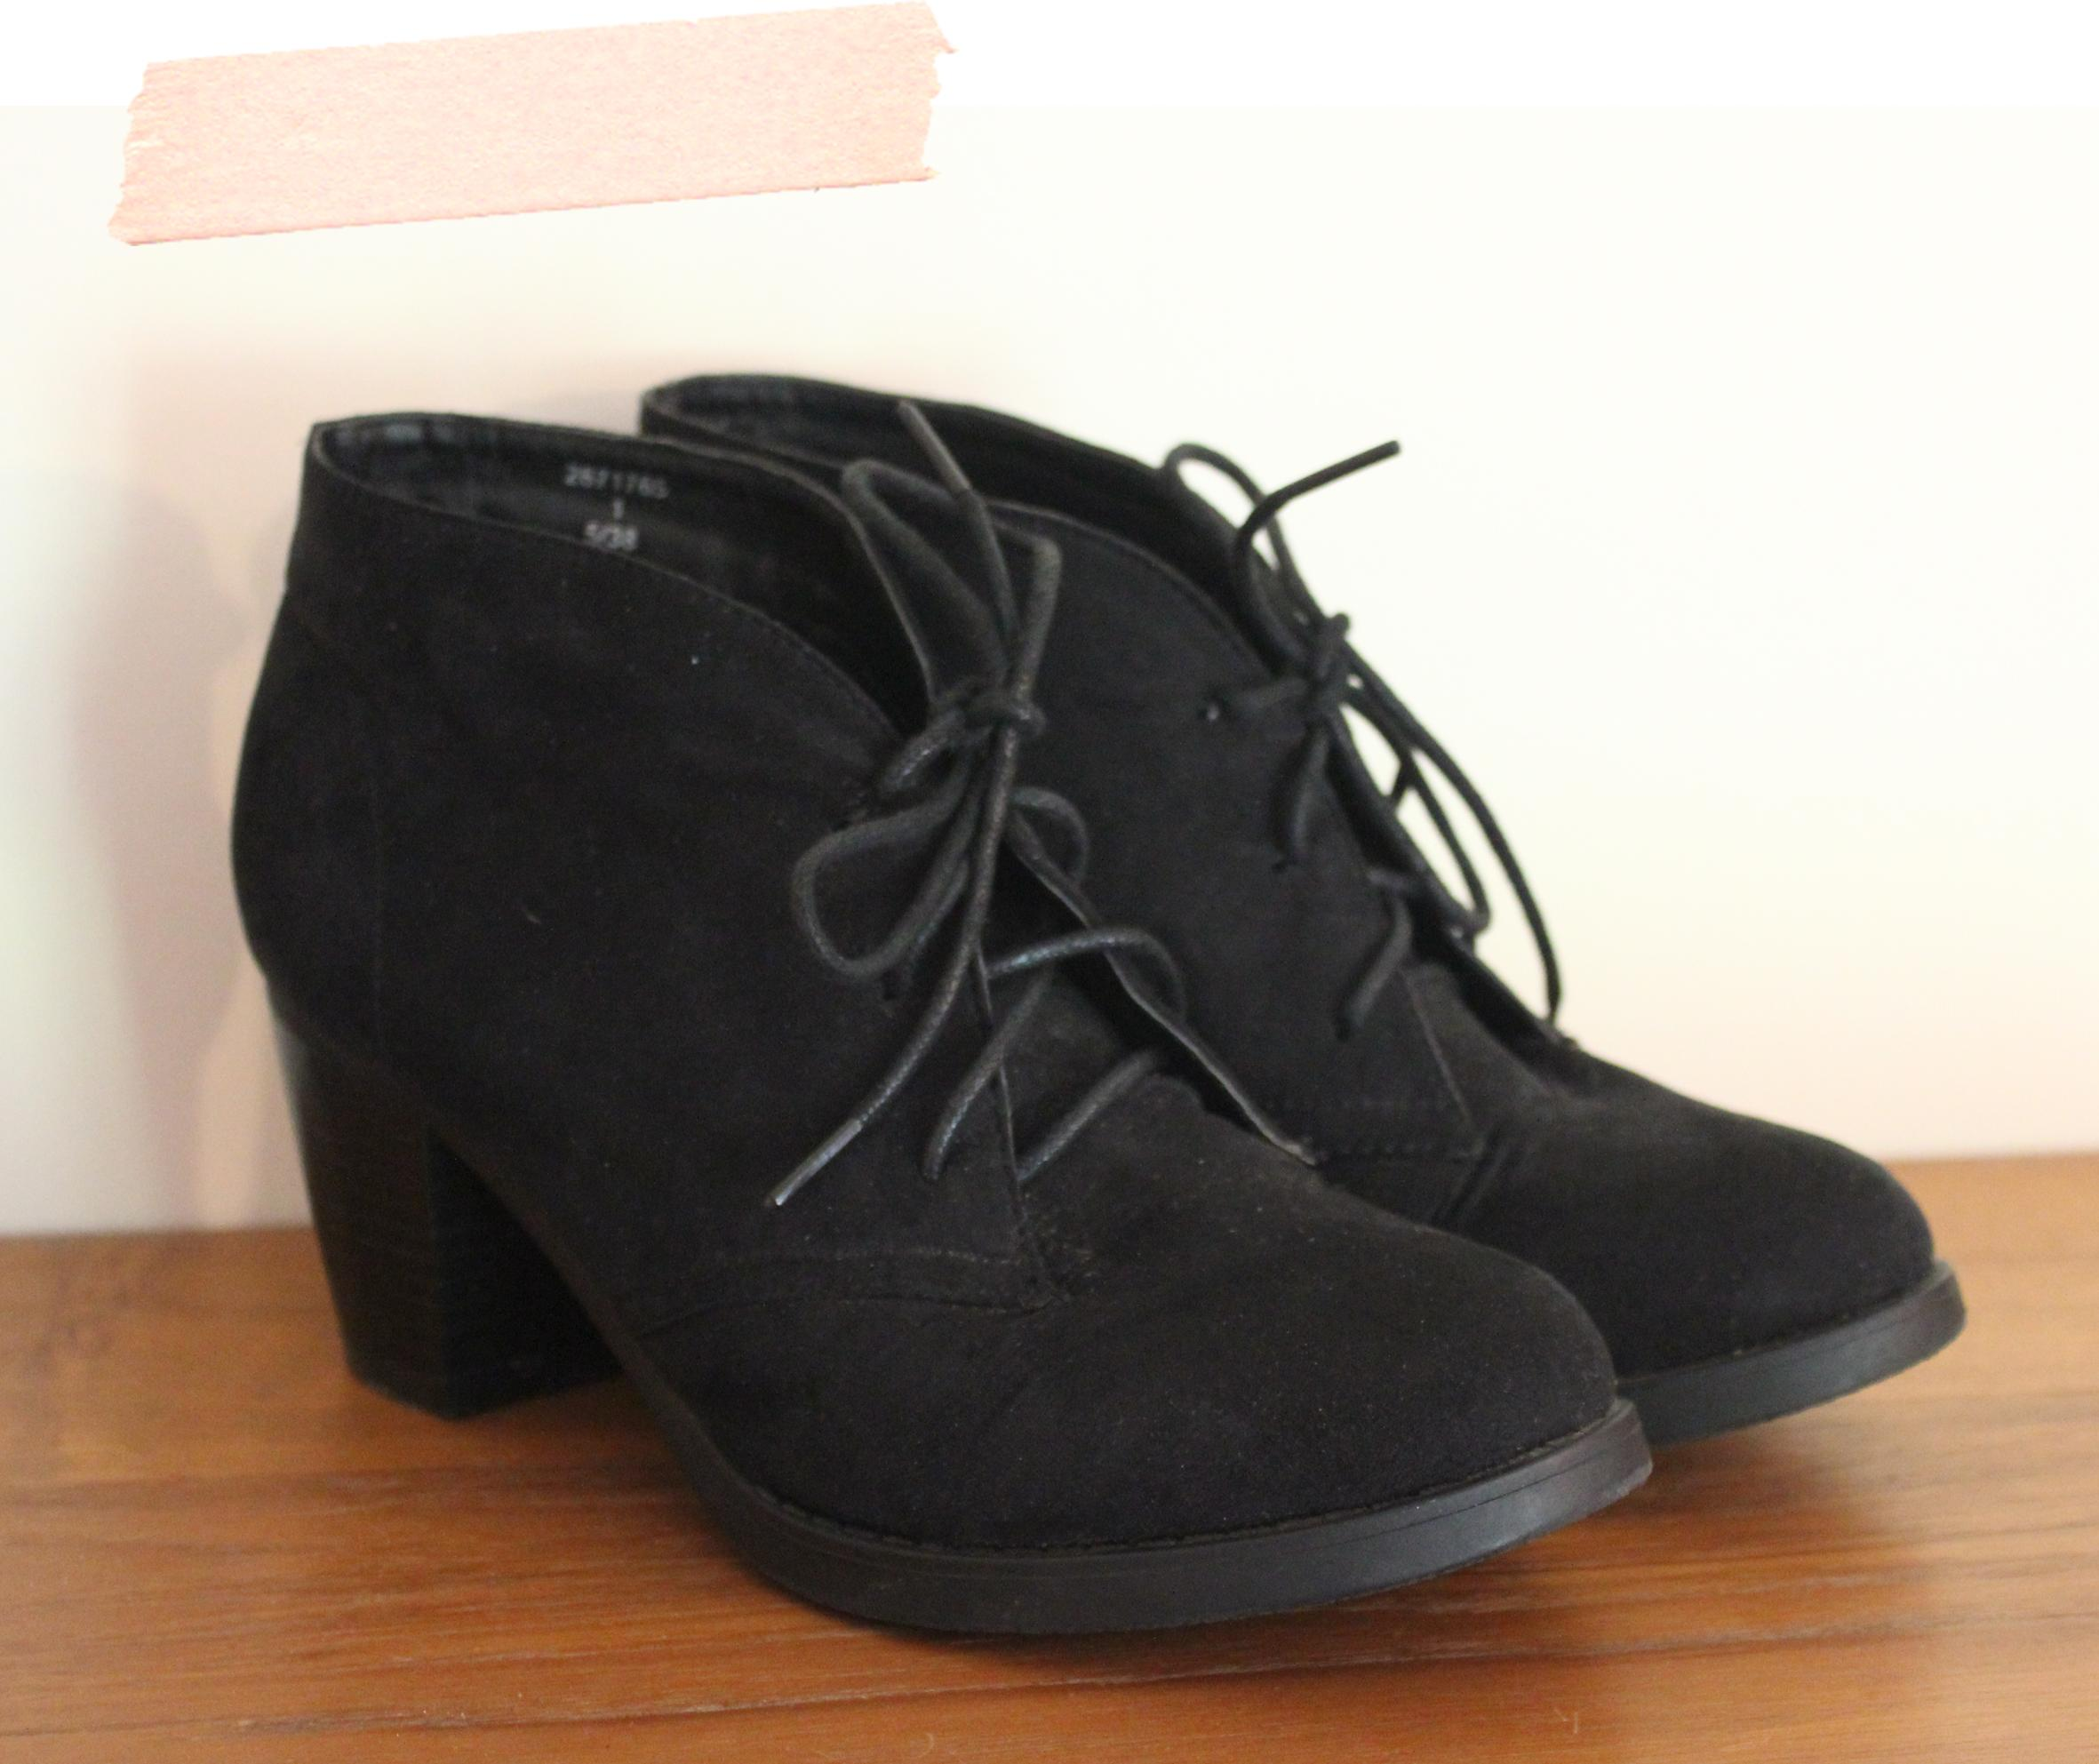 Teens Black Block Heel Chelsea Boots by New s2w6s5q3to.gqble Sizes:Choose size,UK 3,UK 4,UK 5,UK 6.